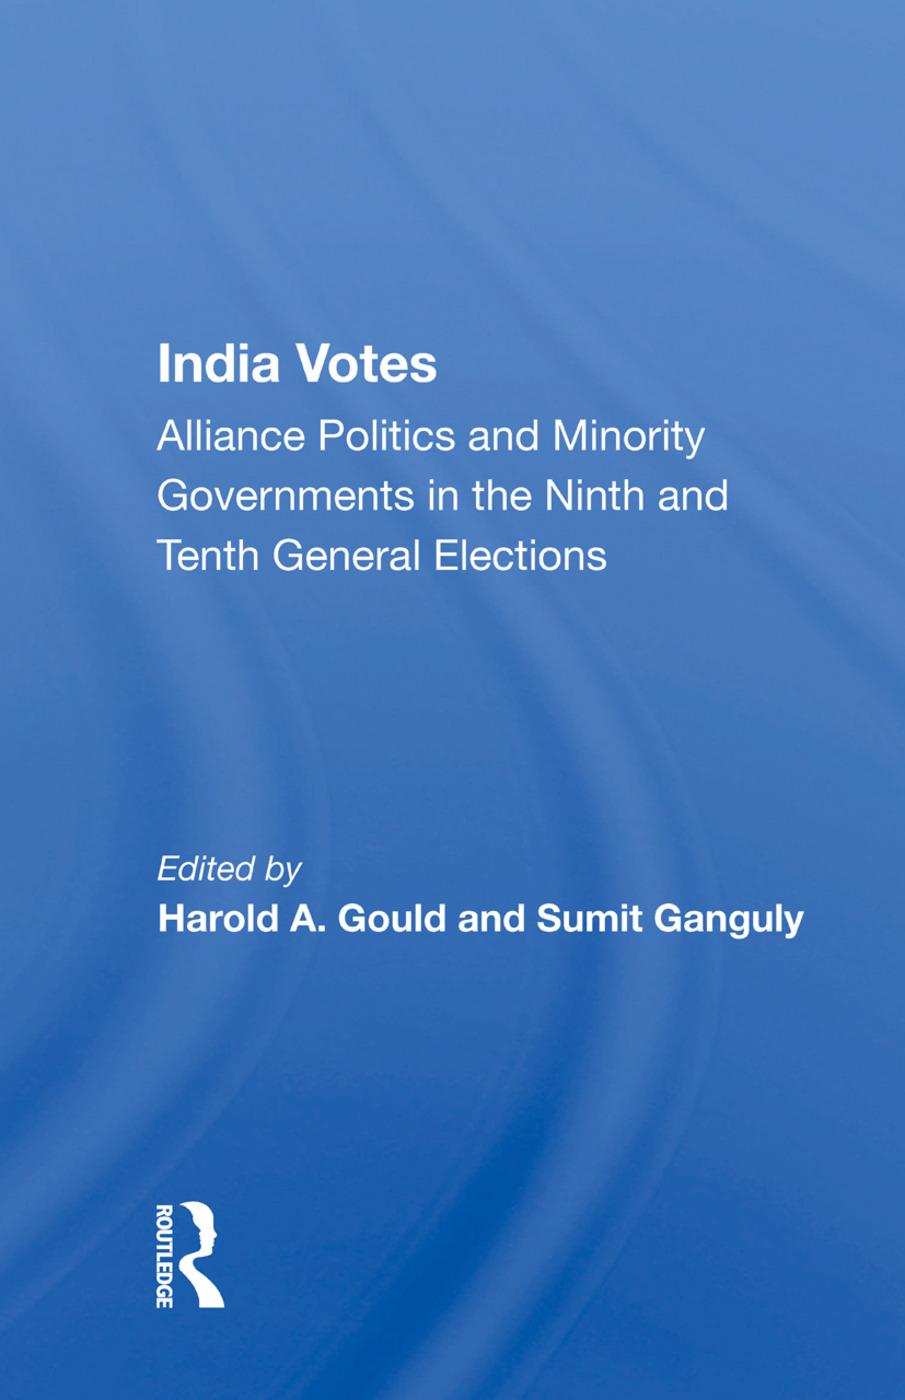 India Votes: Alliance Politics And Minority Governments In The Ninth And Tenth General Elections book cover